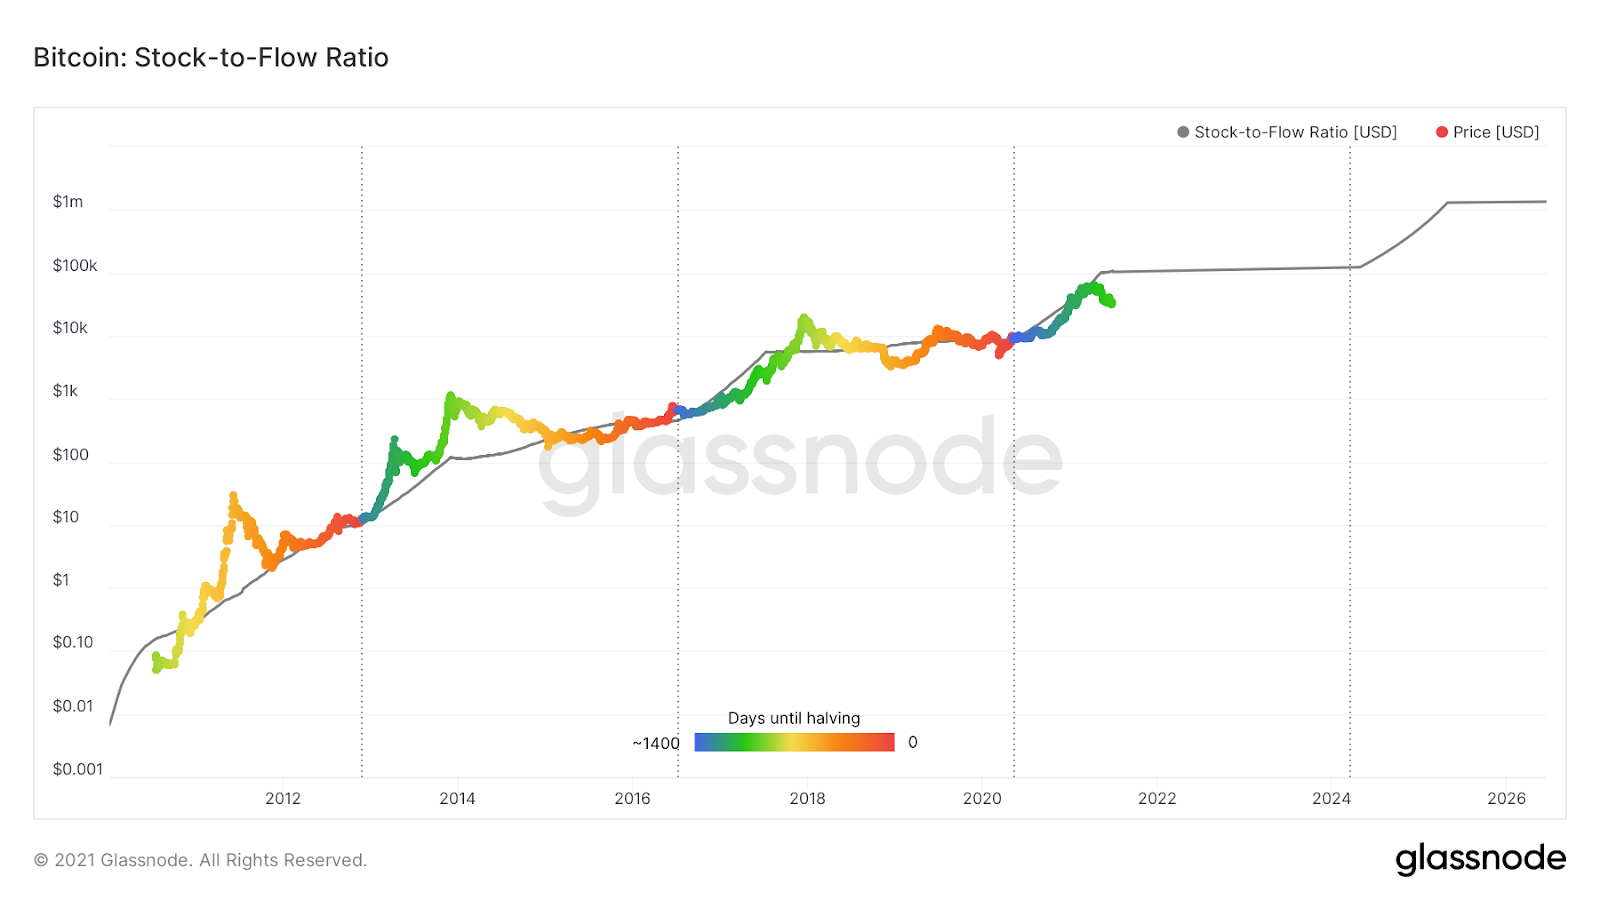 Bitcoin's Stock-to-Flow Model